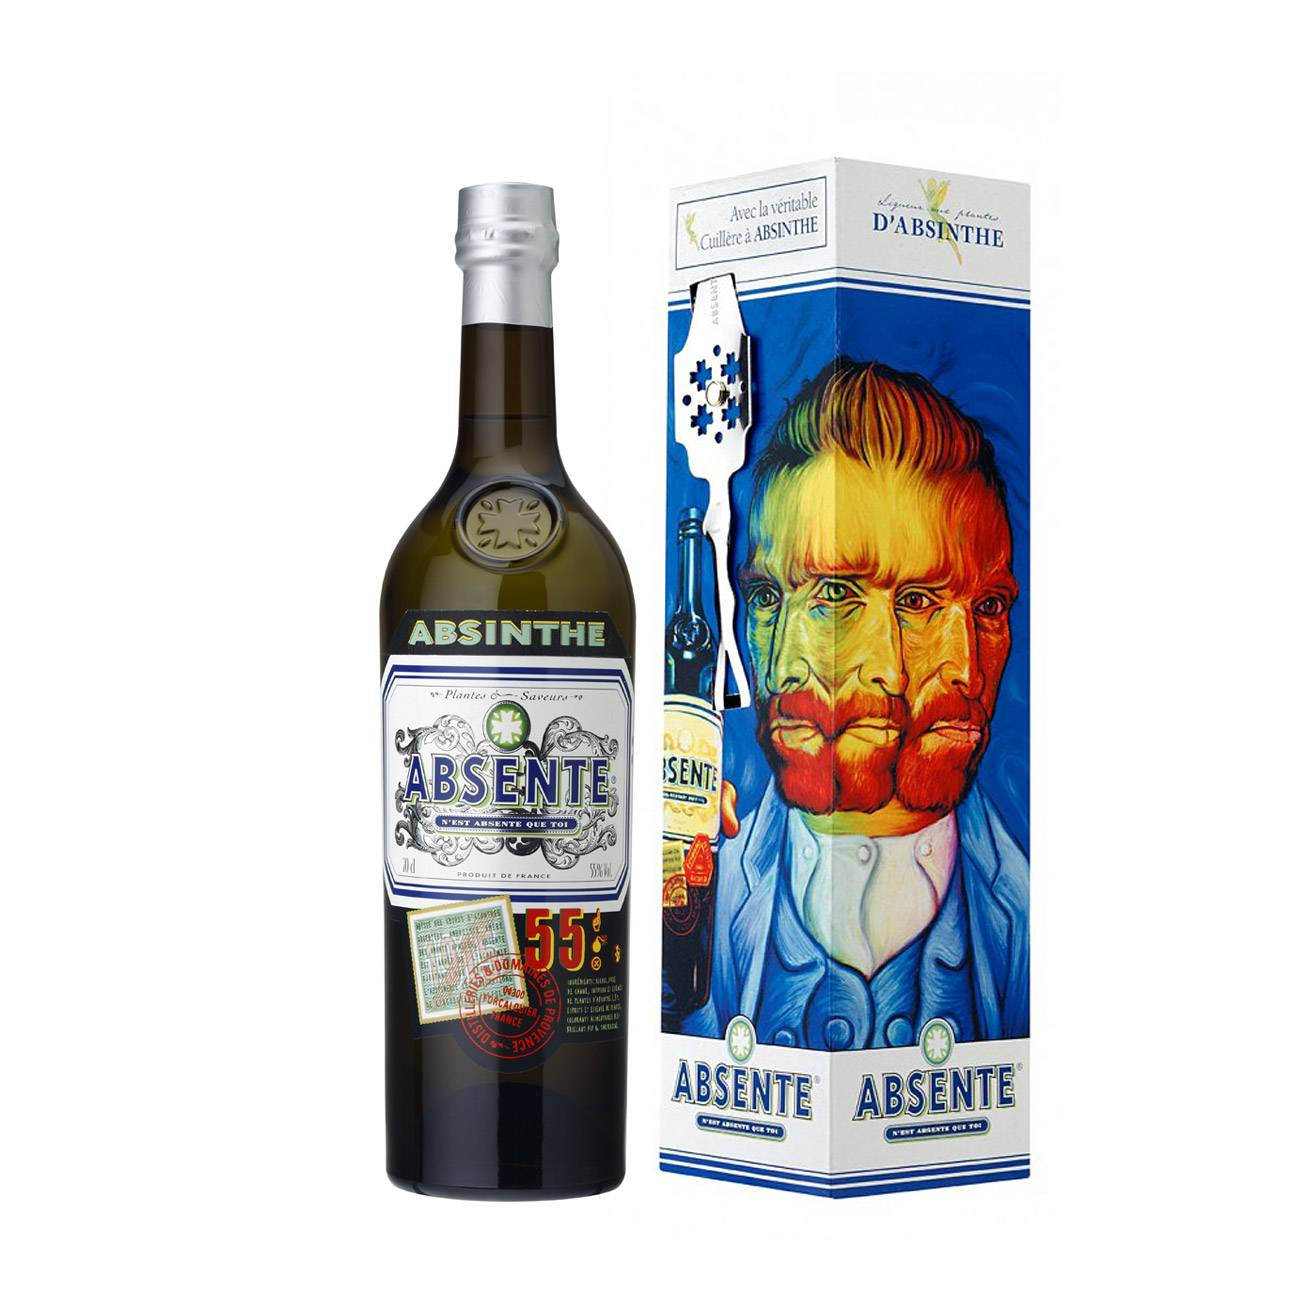 Aperitive si vermut, Absinth 55 700 Ml, Absente